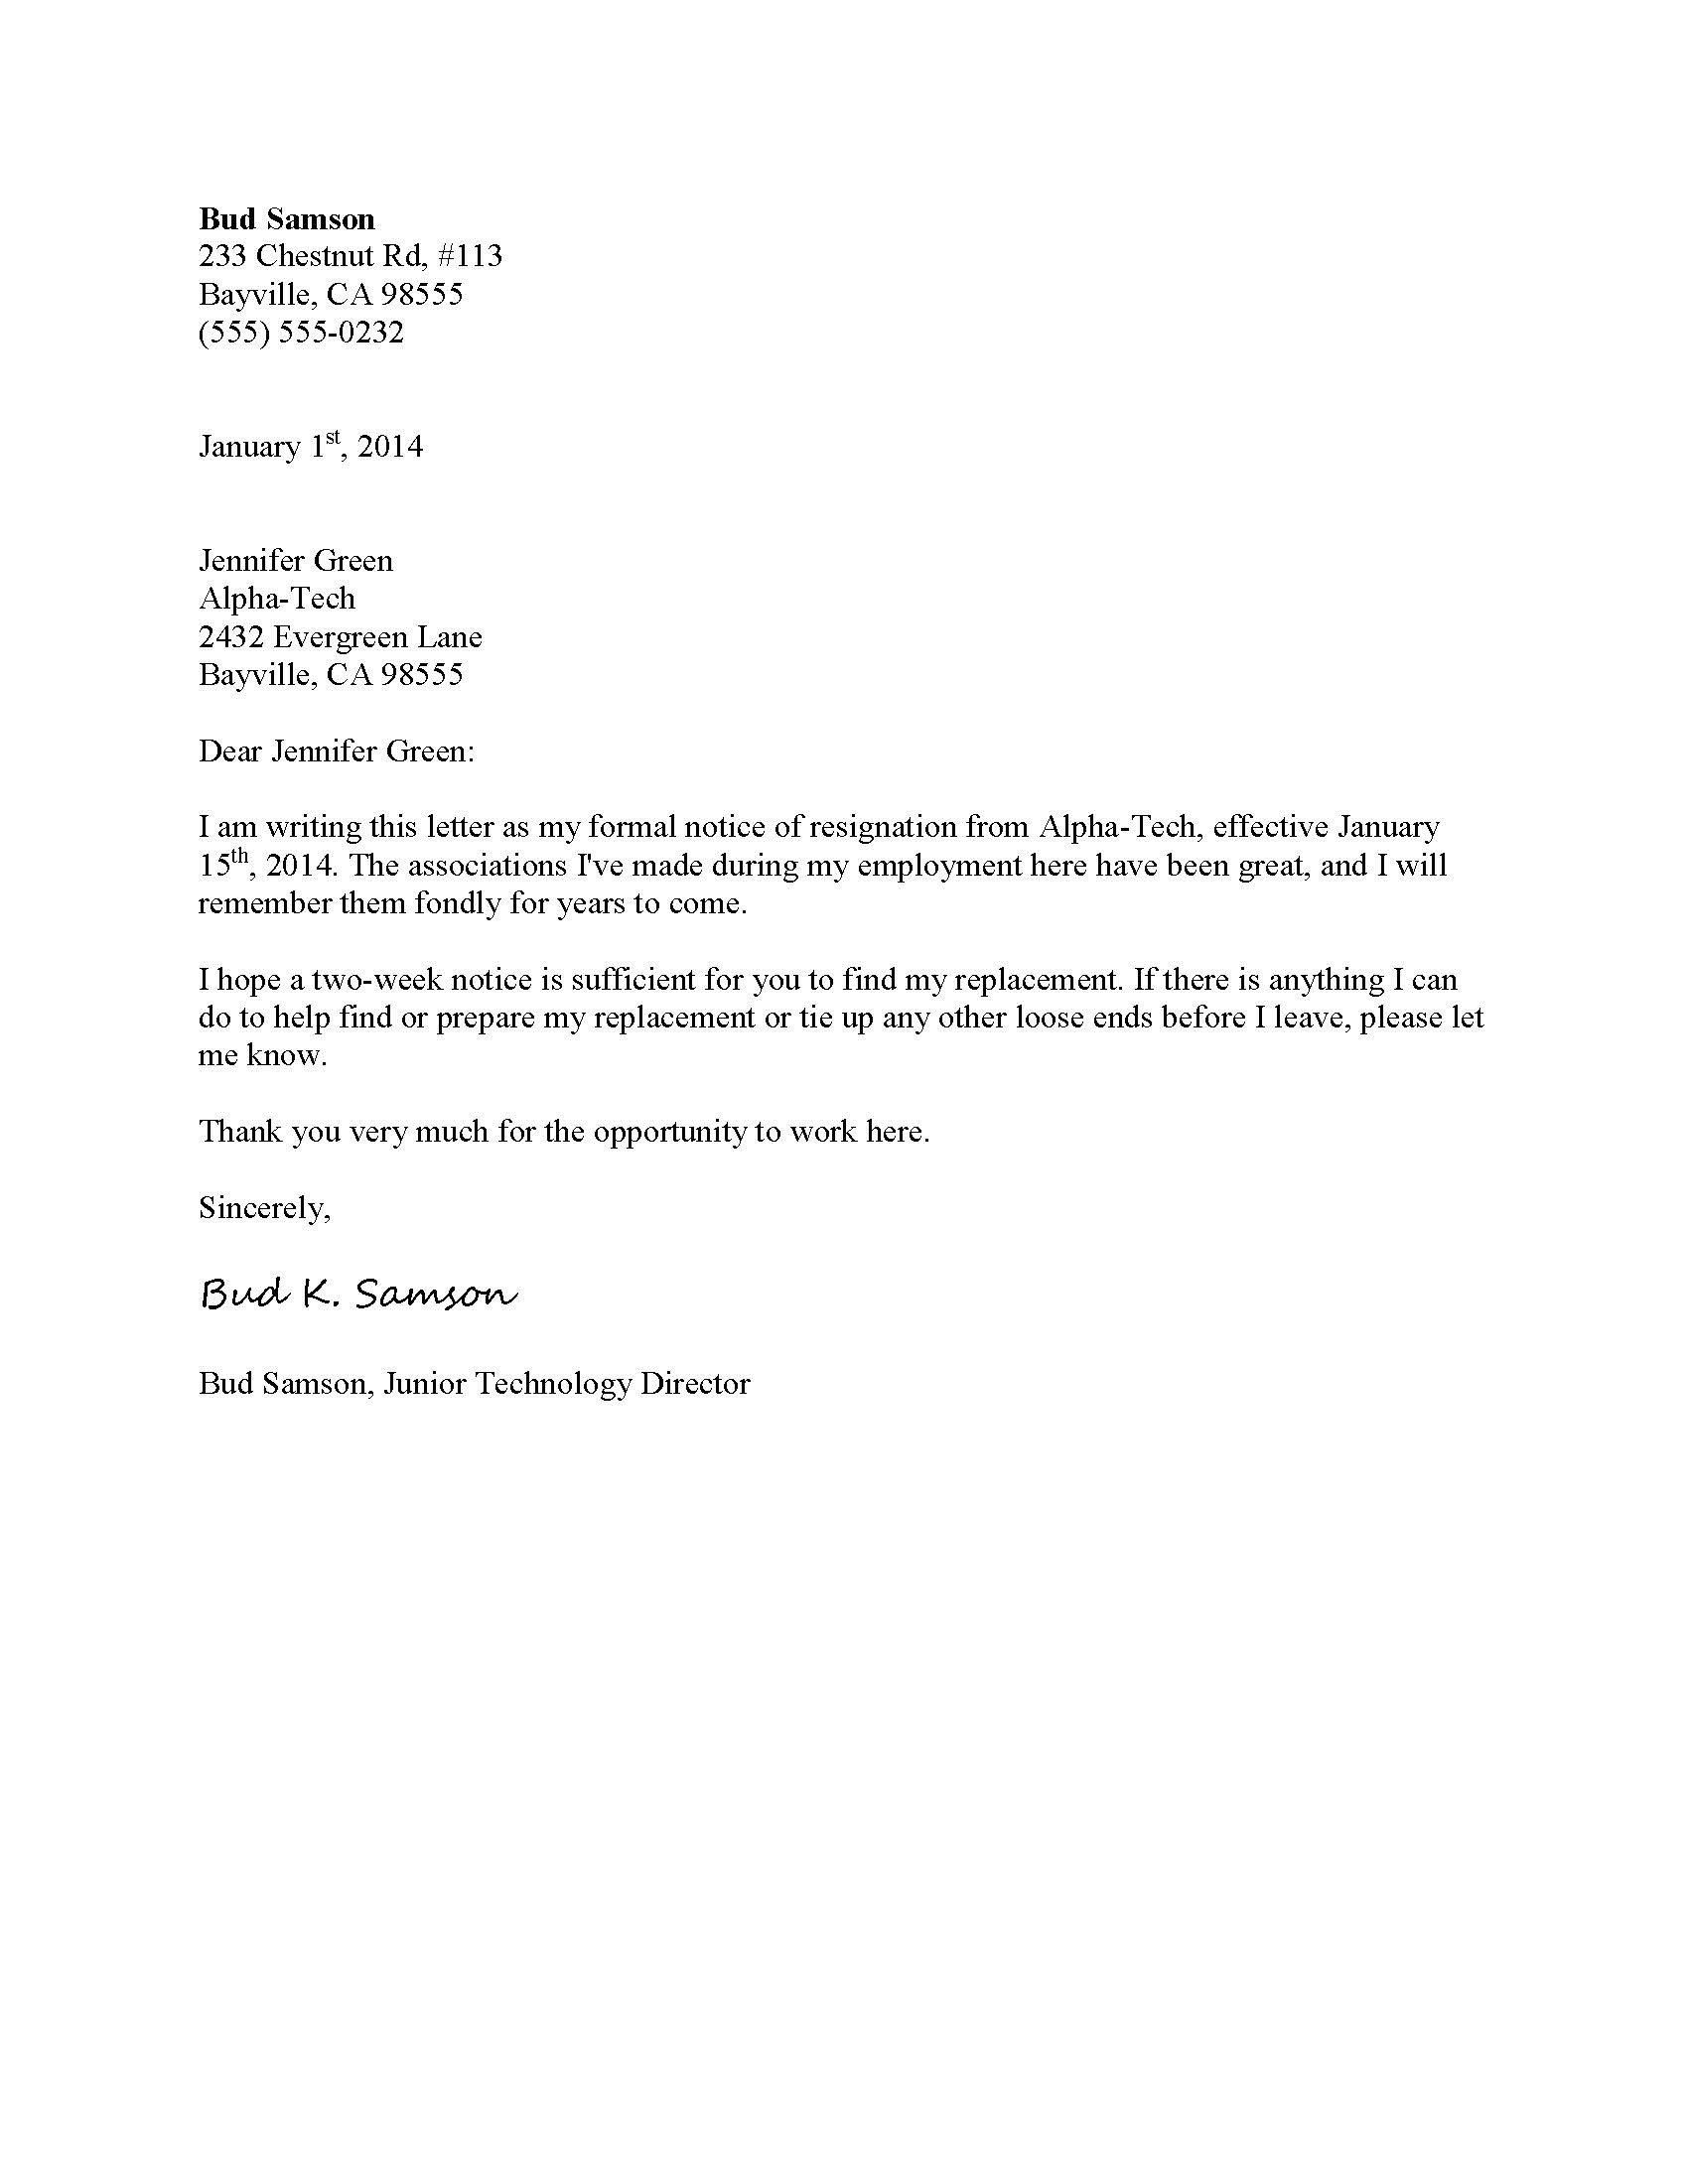 Resignation Letter Effective Immediately Beautiful How to